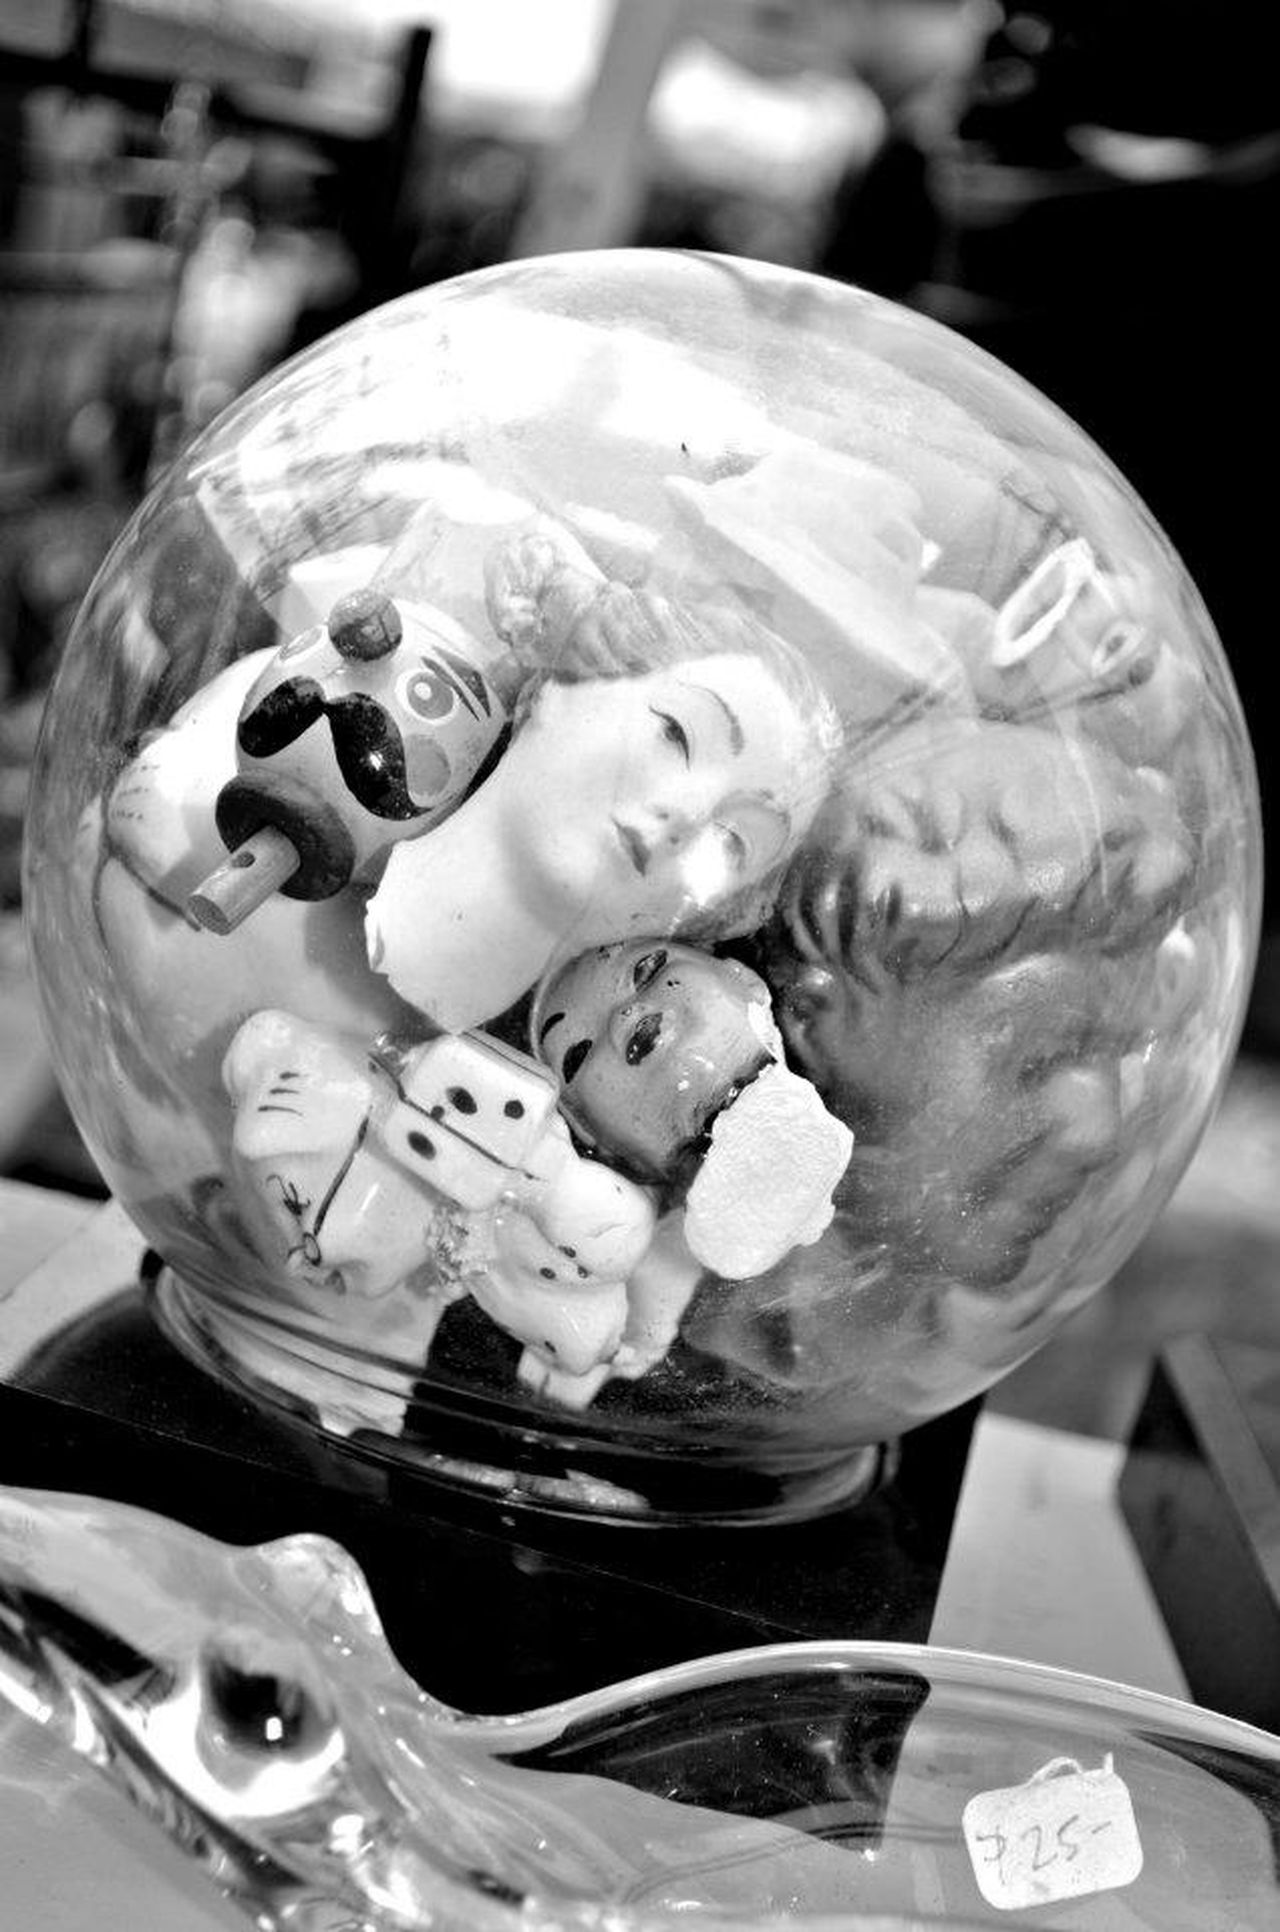 Childhood Close-up Day Doll Indoors  No People Pacifier The Photojournalist - 2017 EyeEm Awards